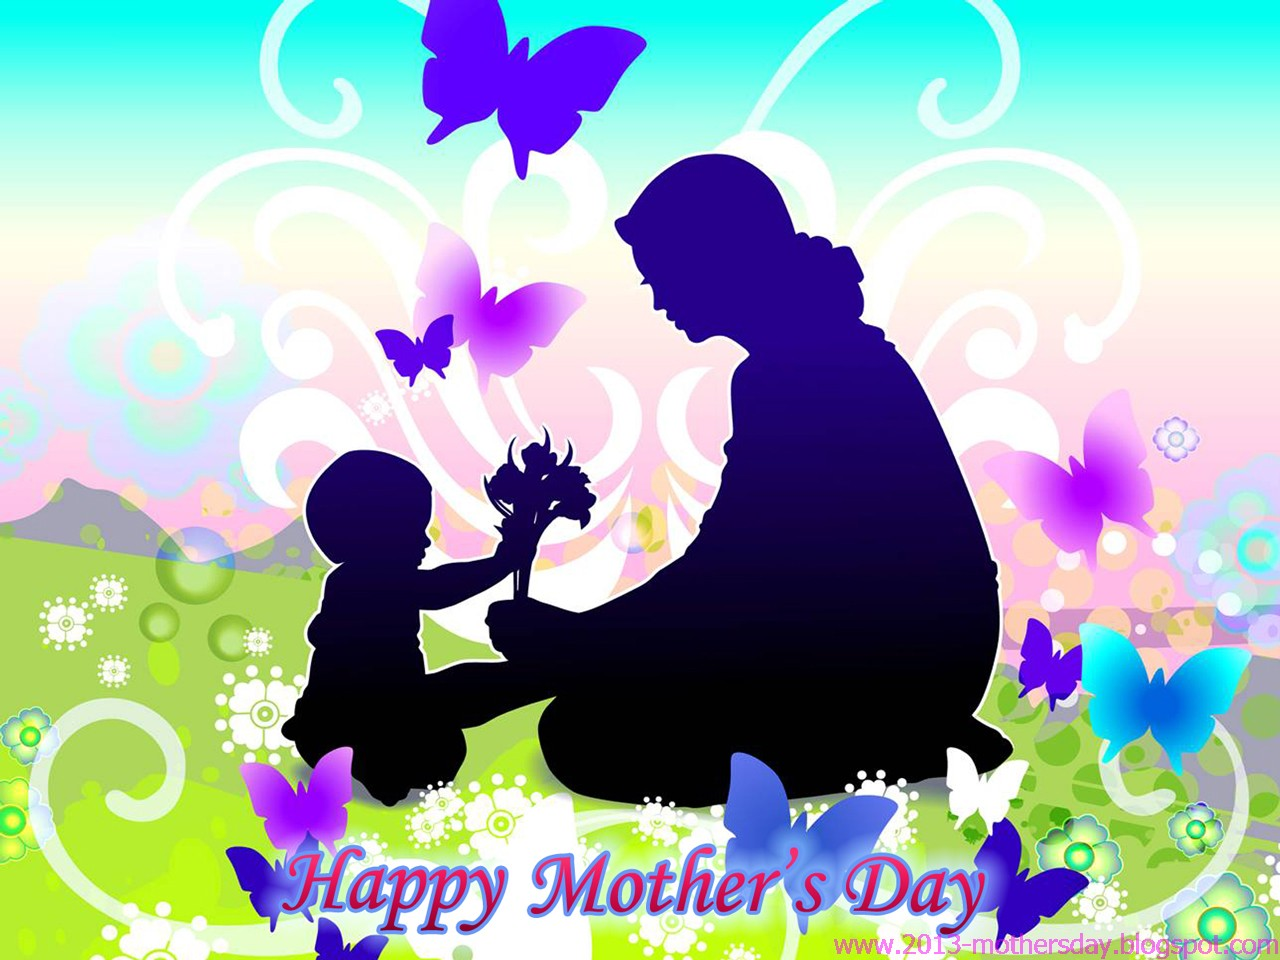 Happy Mothers Day 2013 desktop HD Wallpaper 1280x960